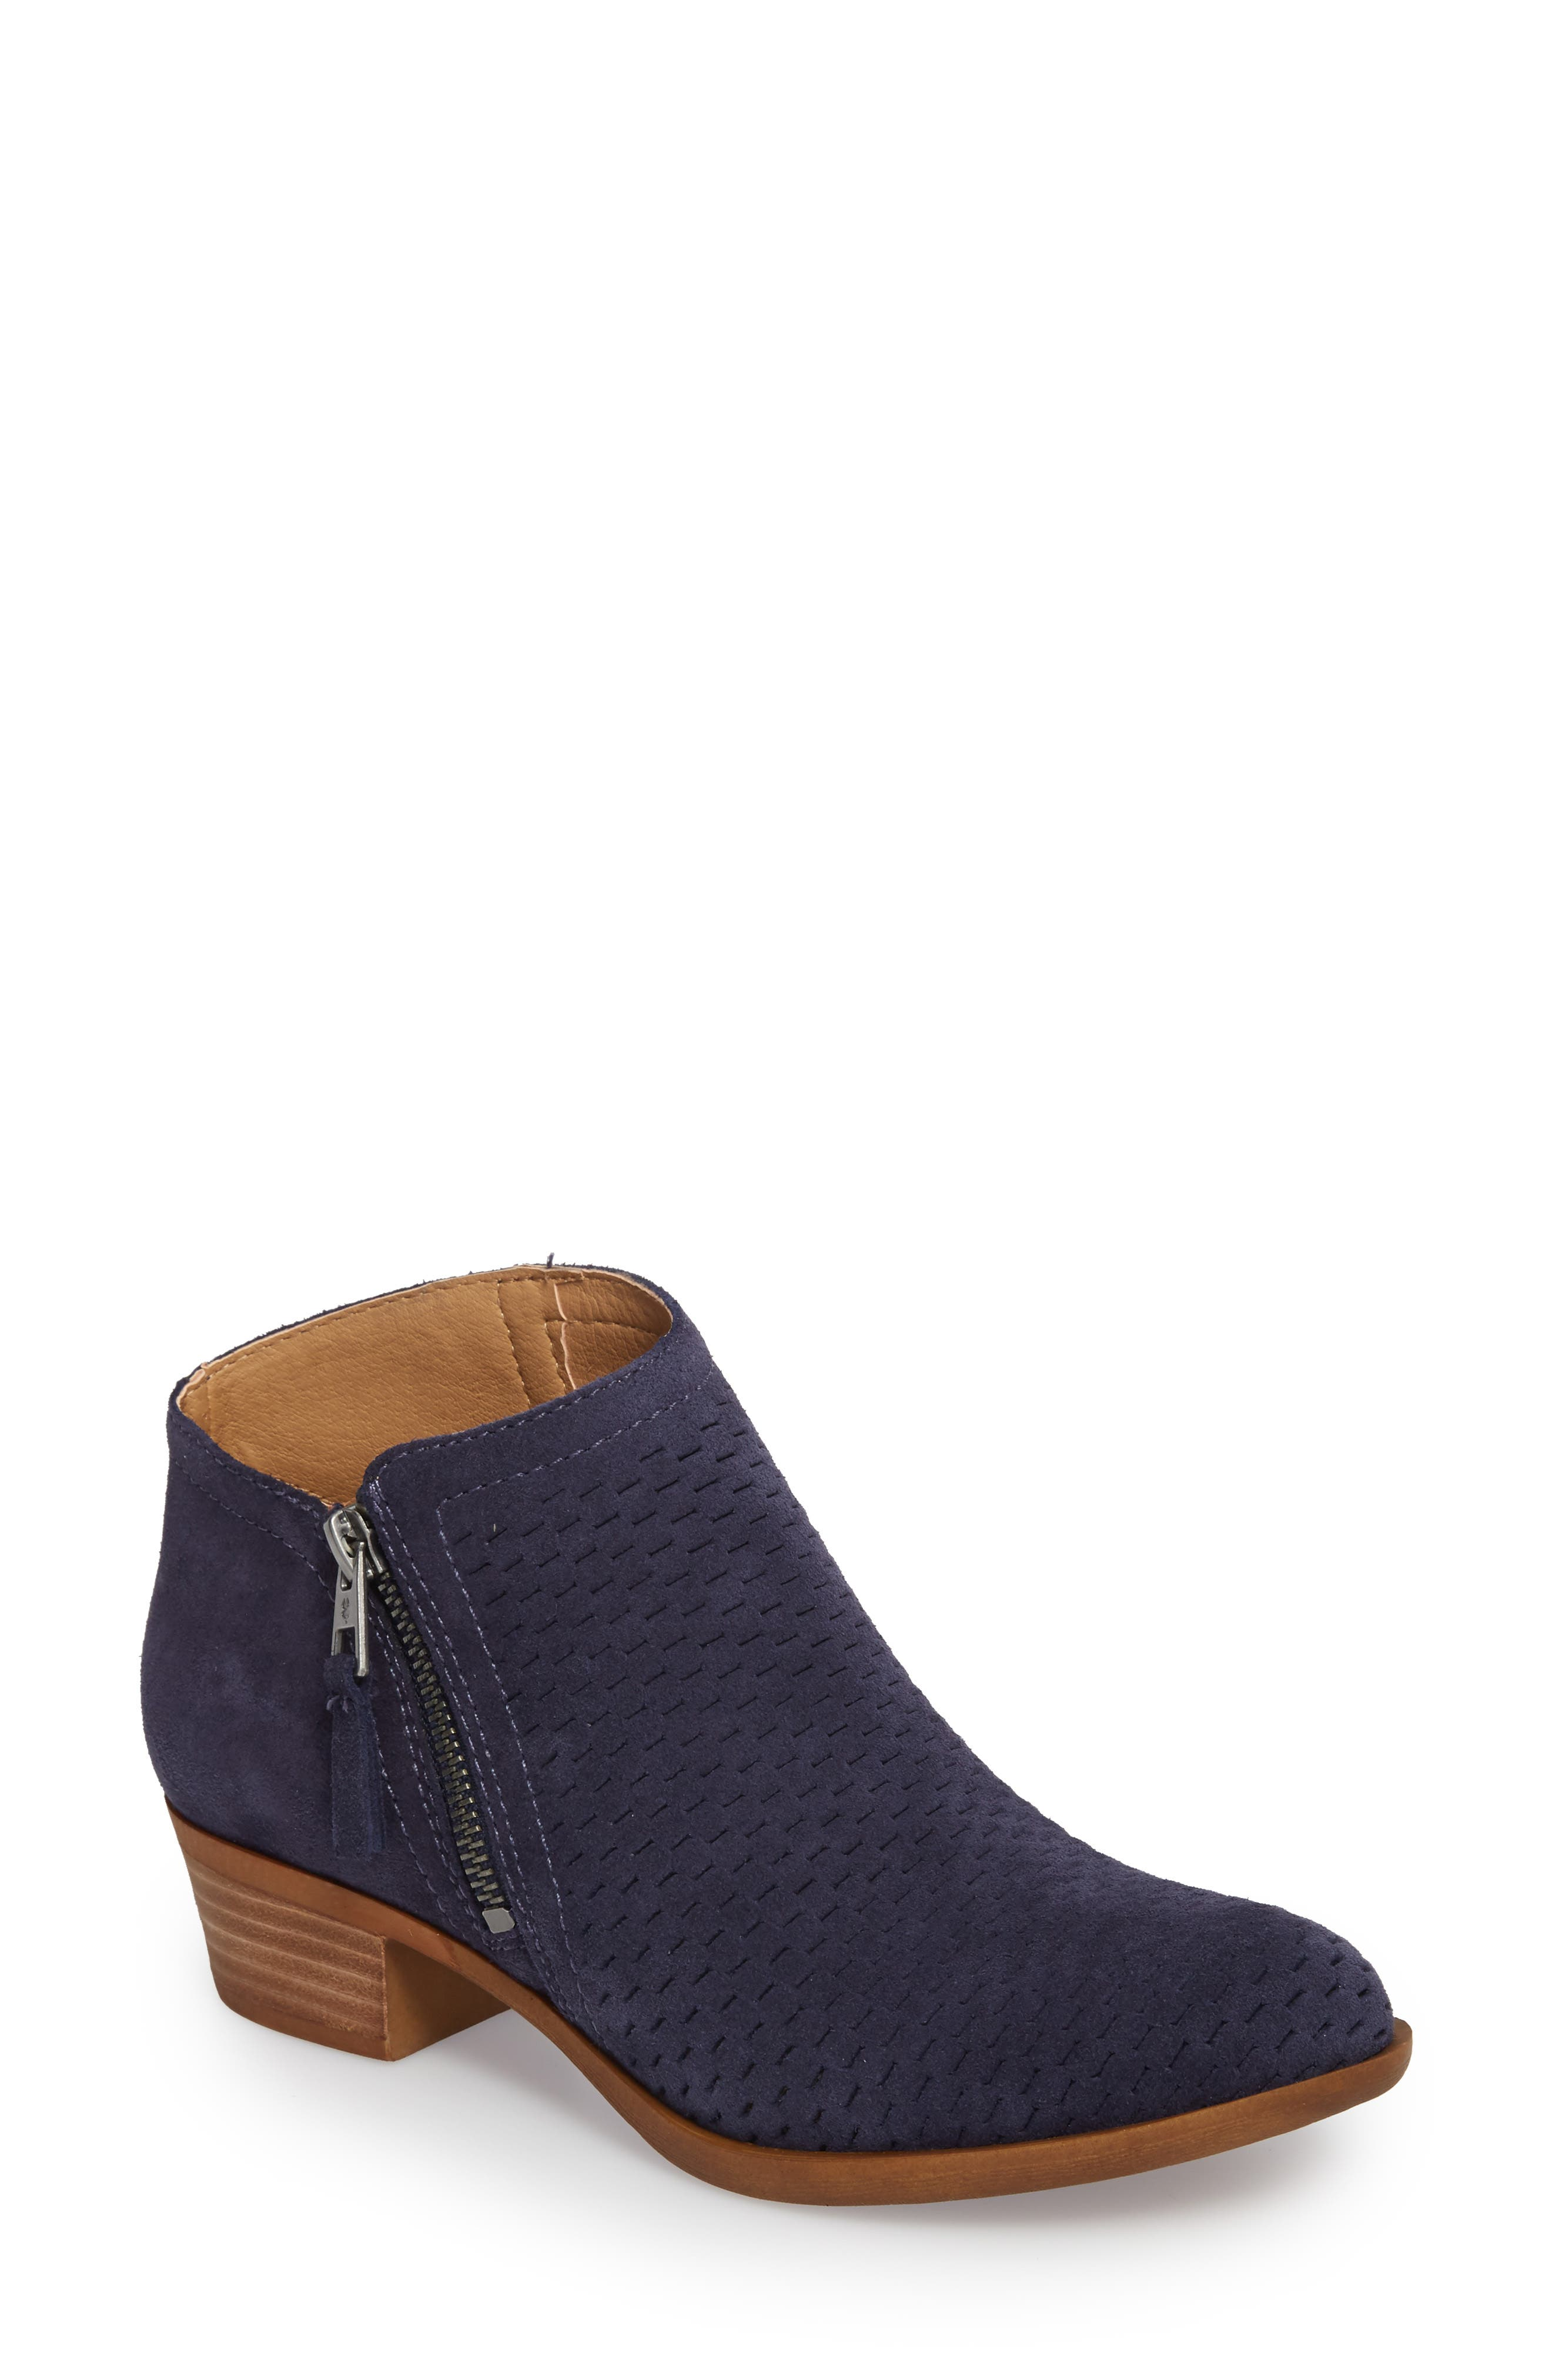 Alternate Image 1 Selected - Lucky Brand Brielley Perforated Bootie (Women)